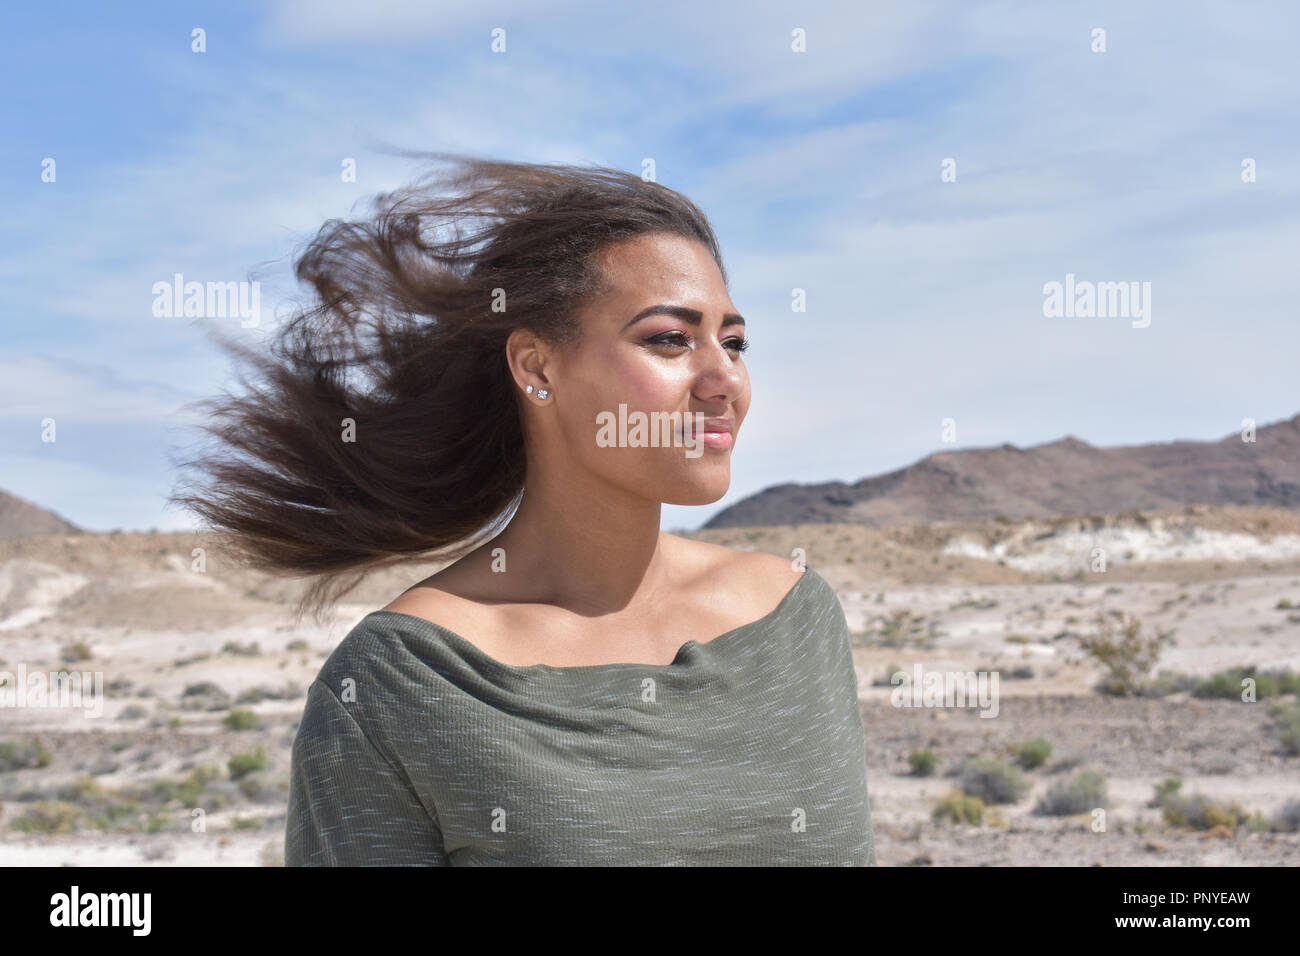 Wind Blowing Mixed Race Hair Stockfotos & Wind Blowing Mixed Race ...